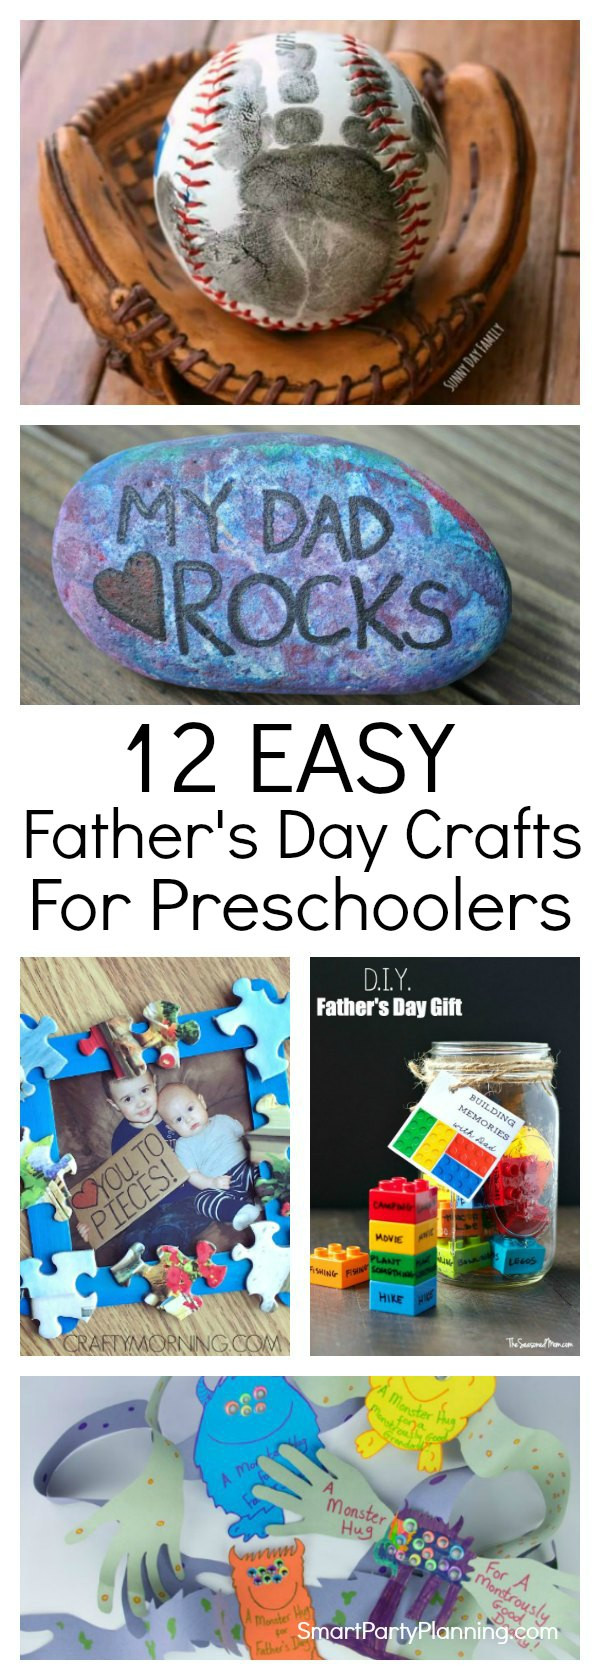 DIY Father'S Day Gifts From Kids  12 Easy Fathers Day Crafts For Preschoolers To Make